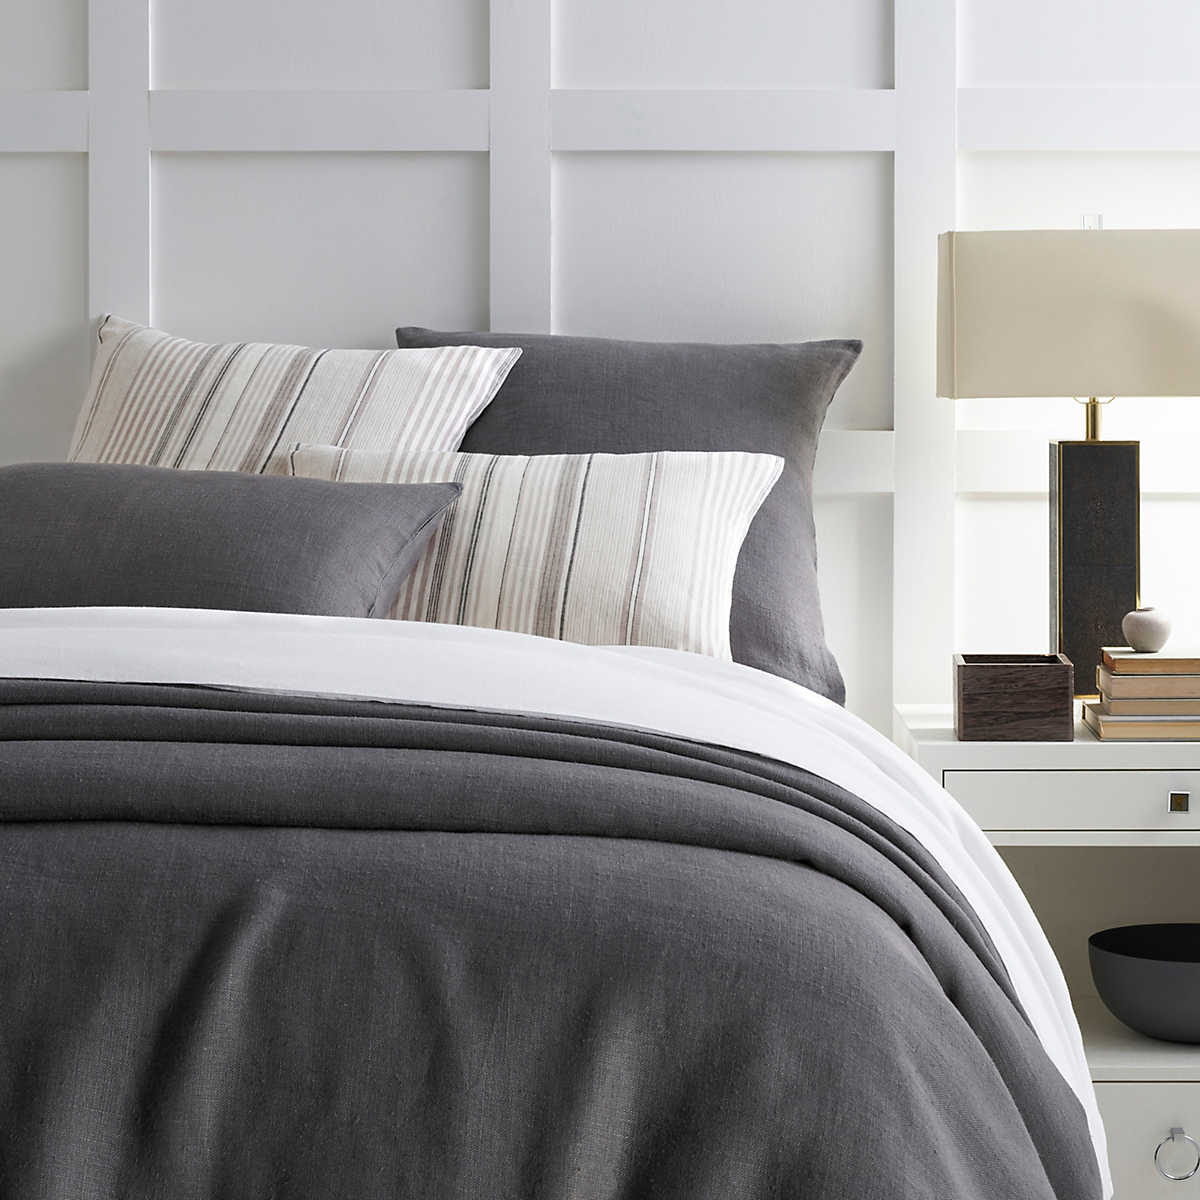 Stone Washed Linen Shale Duvet Cover Pine Cone Hill